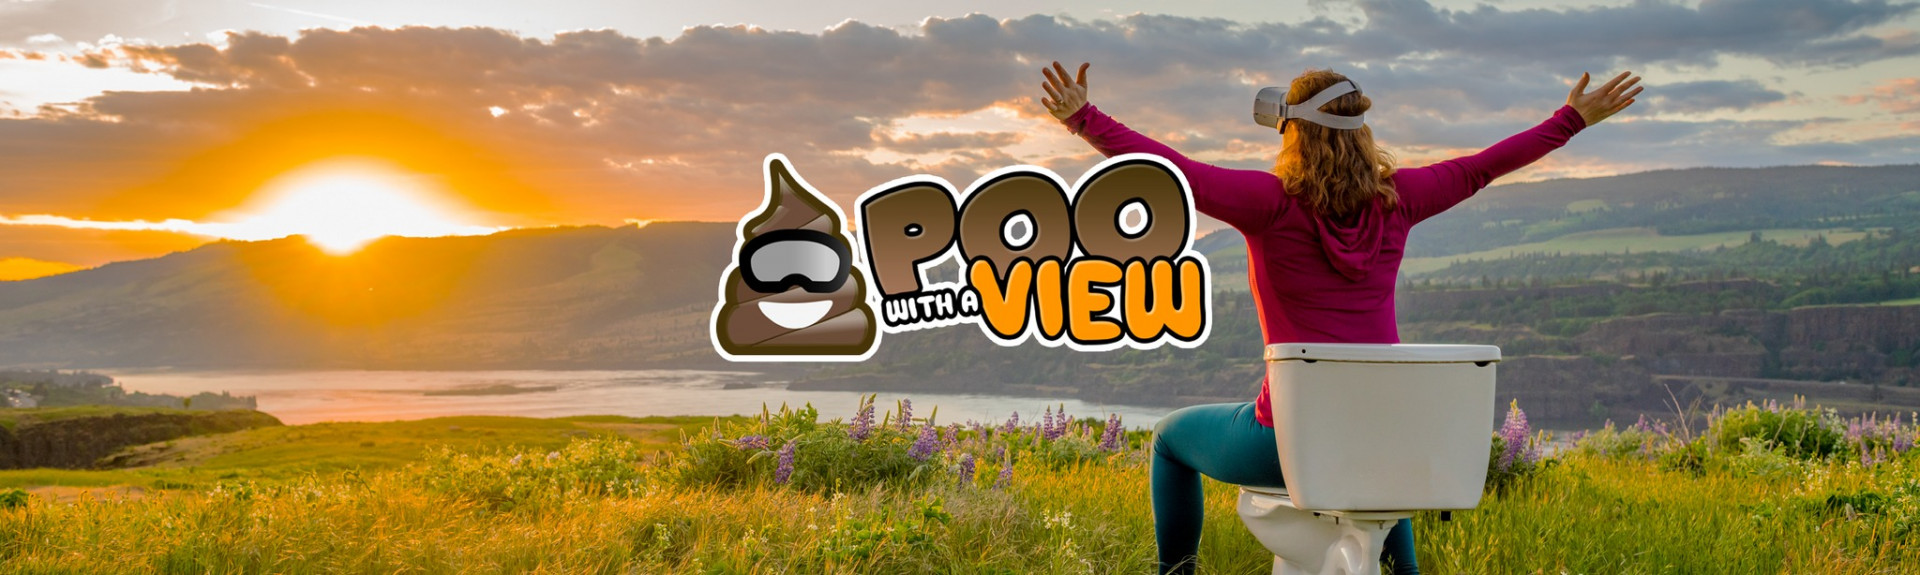 Poo With a View